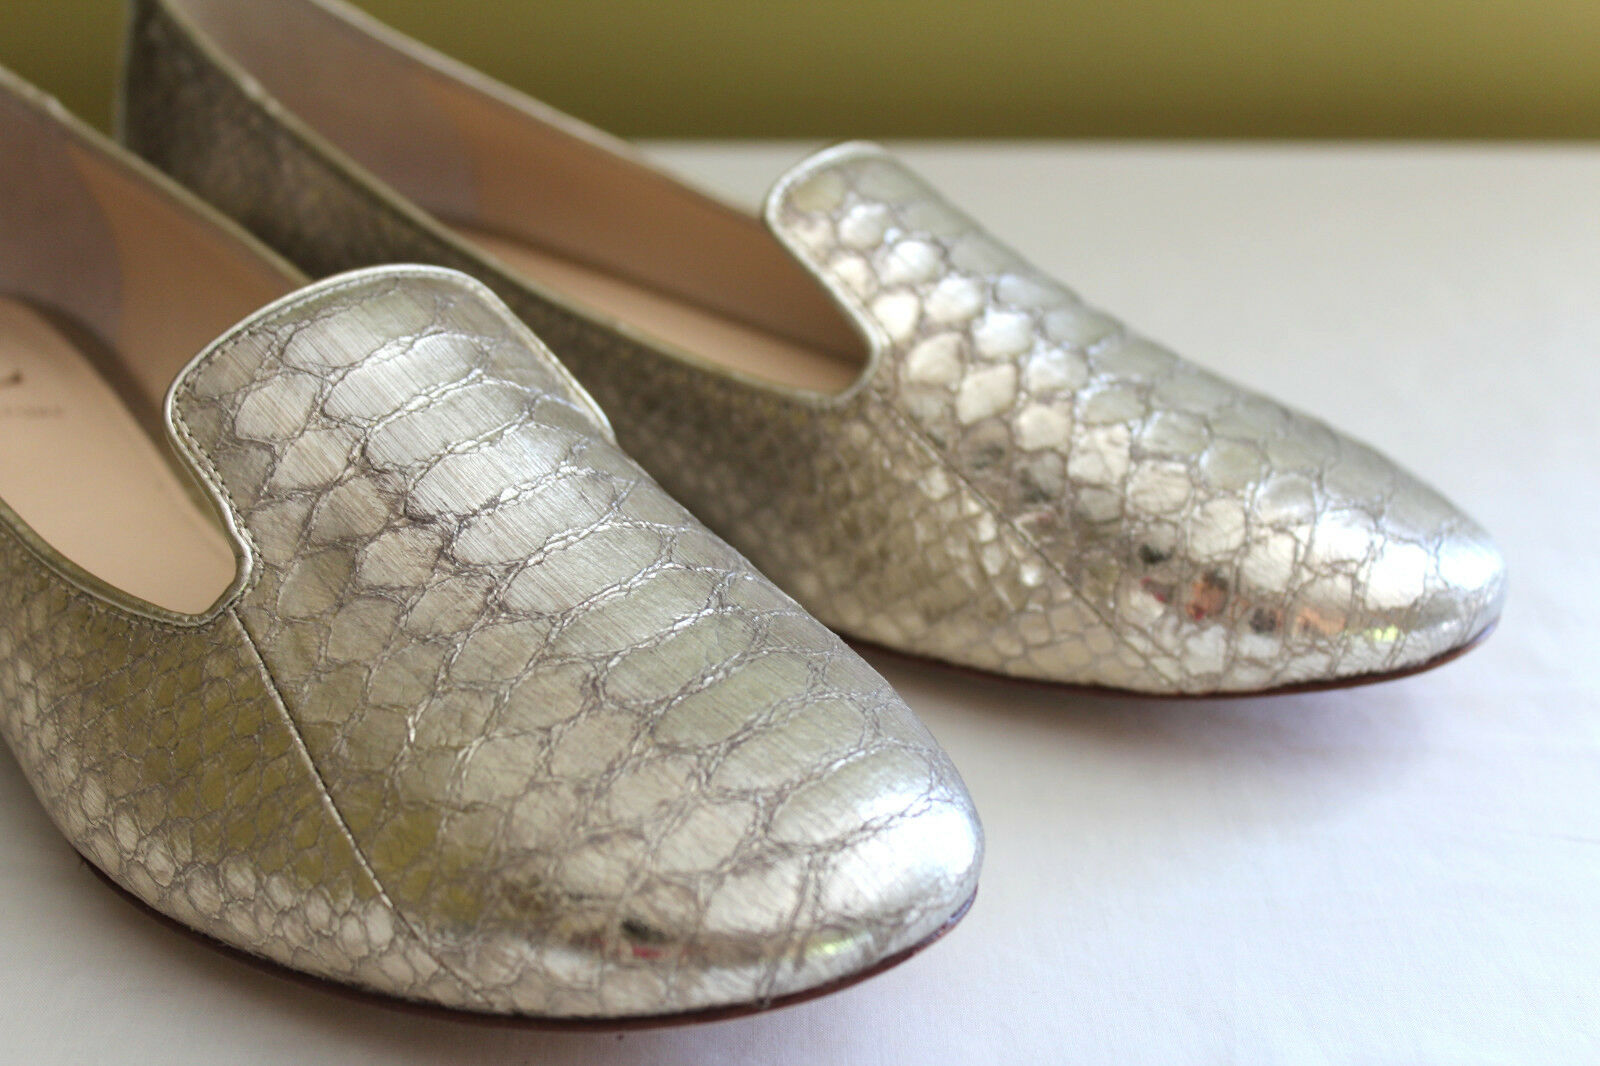 NEW! VC Classic Signature Gold Platinum Leather Classic VC Natalie Loafers Flats 9M 39 $225 cd4055